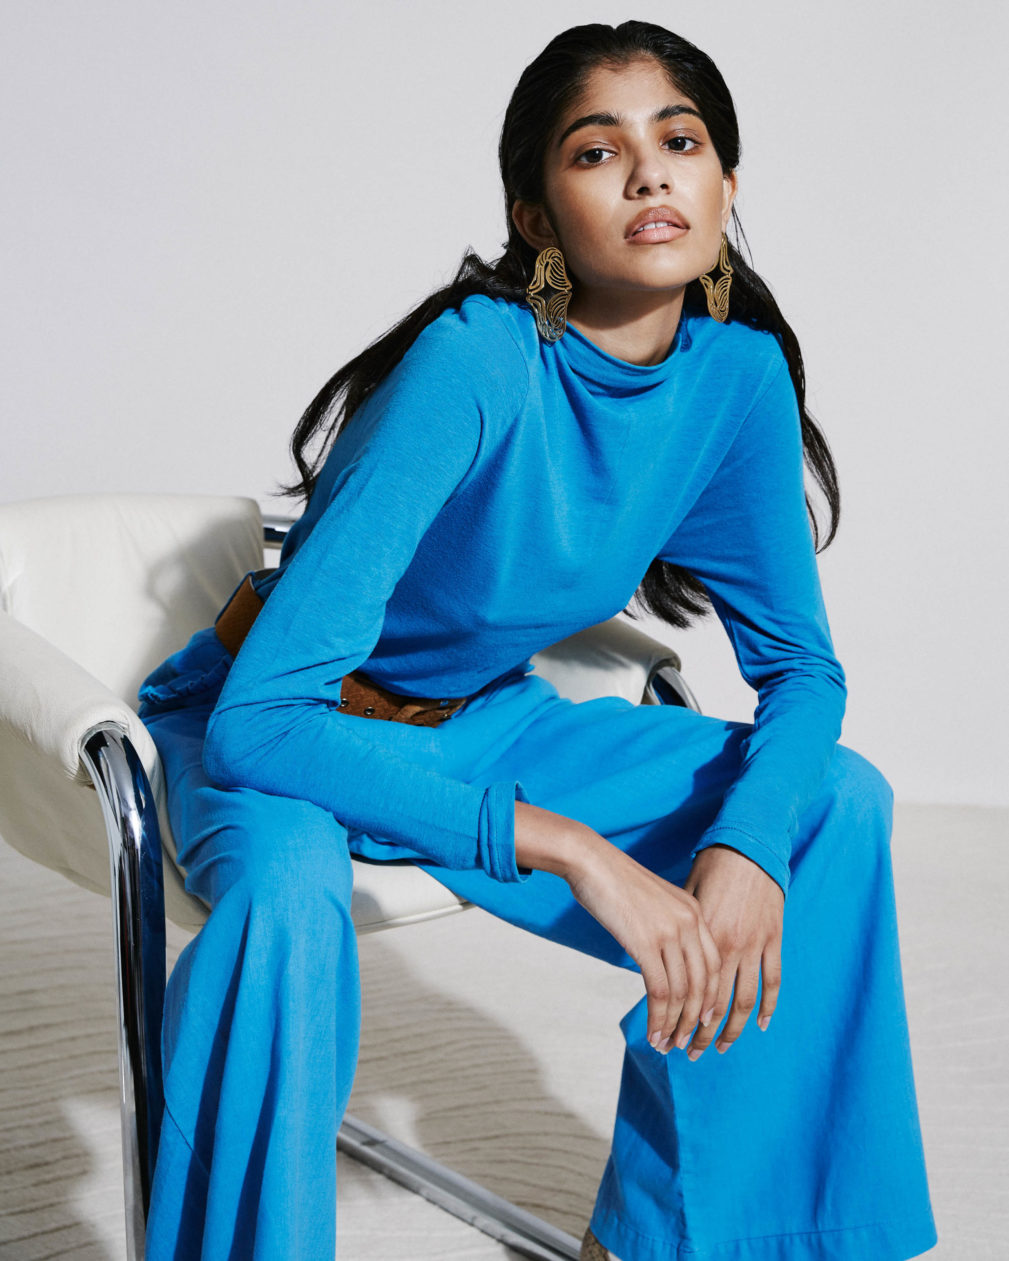 Model wearing blue jumpsuit, seated on chair, Asha Eleven brand, styled by Chrisna de Bruyn. Disco Creatives, Disco Casting, Disco Production. Candice Hatting.